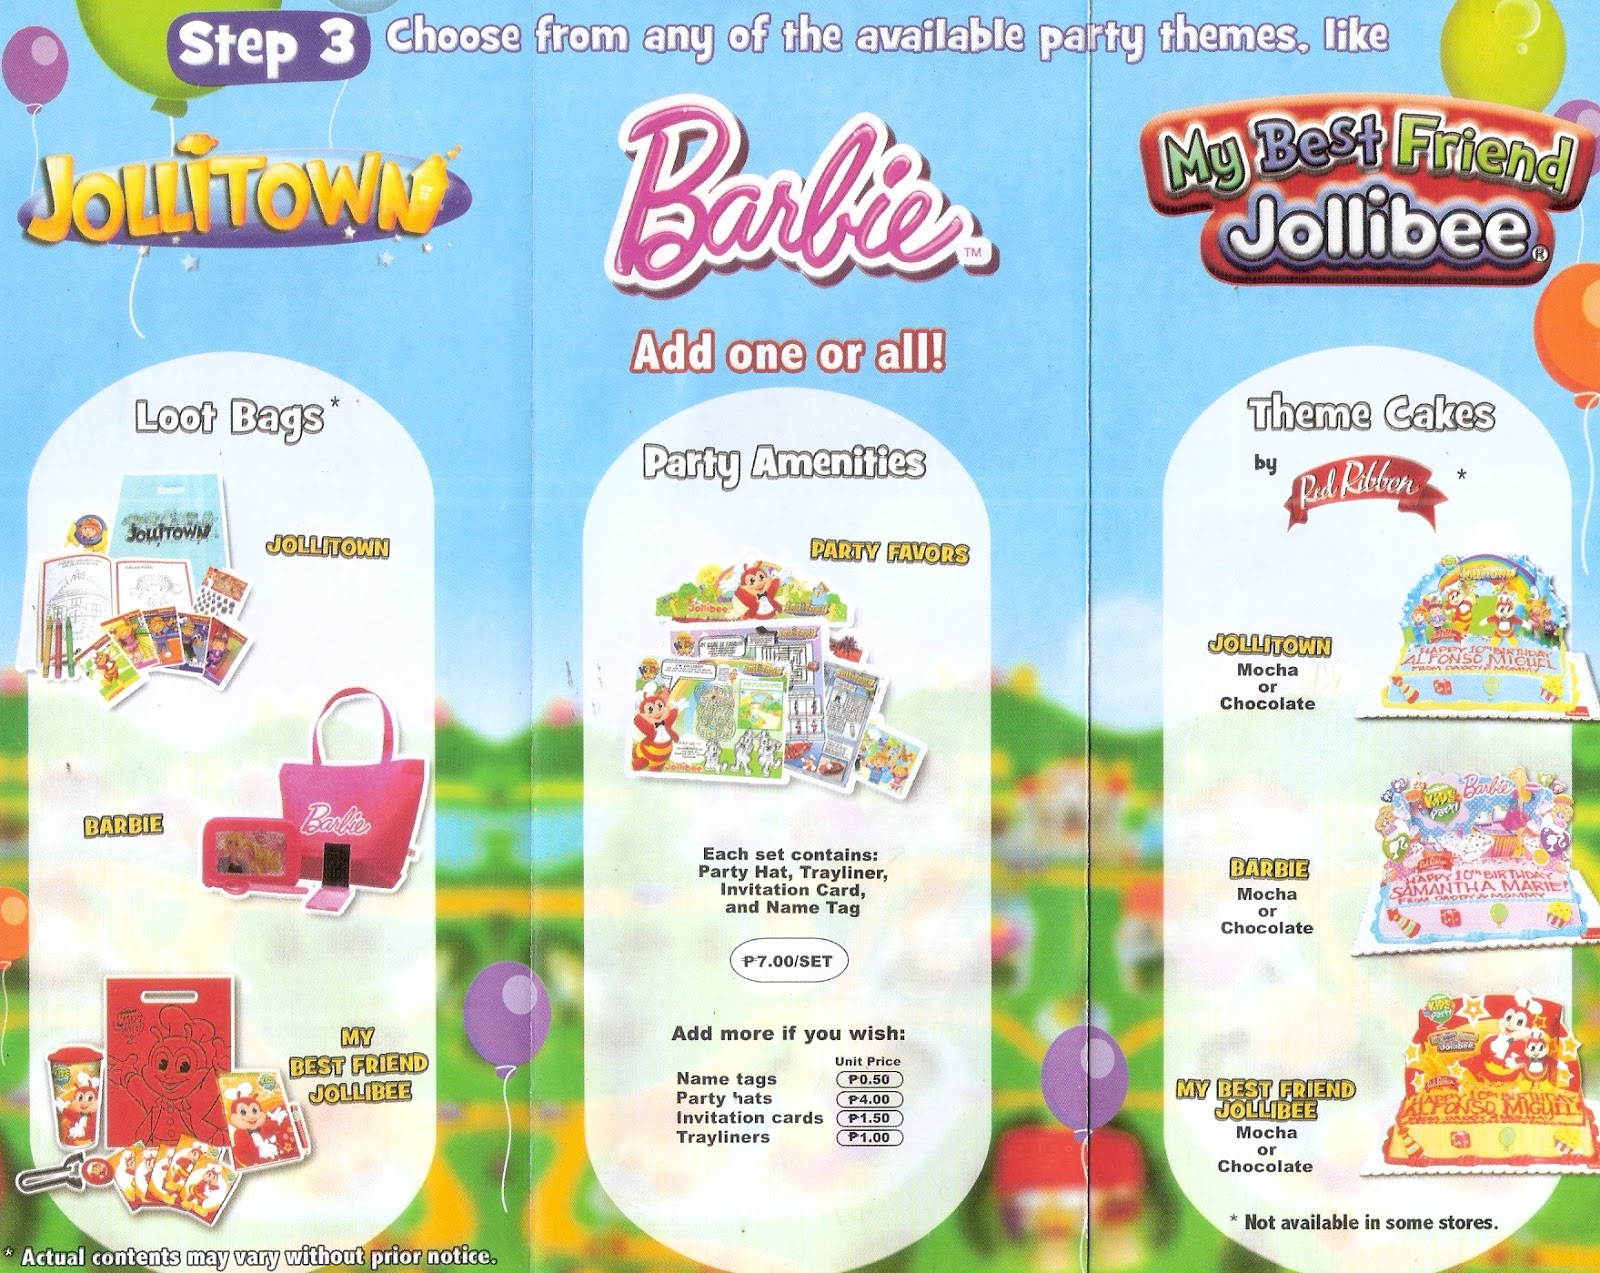 The pinoy informer jollibee party brochure available themes for jollibee party stopboris Gallery